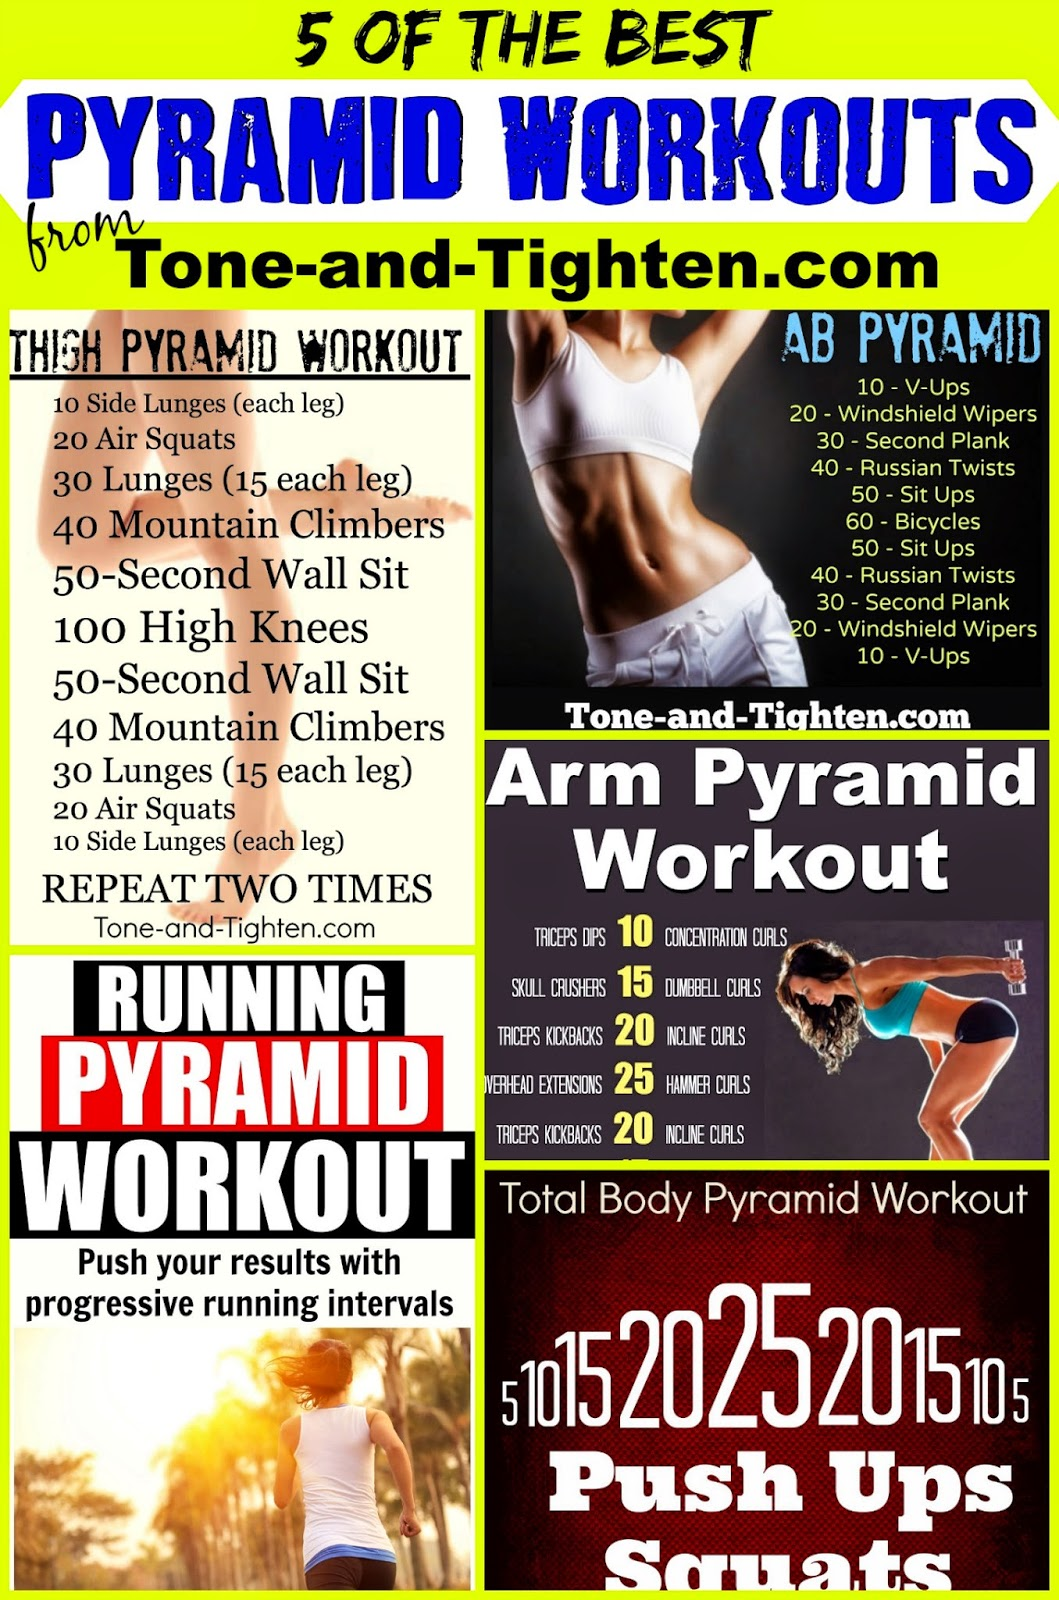 Weekly Workout Plan One Week of Pyramid Workouts All The Best – Weekly Workout Plan